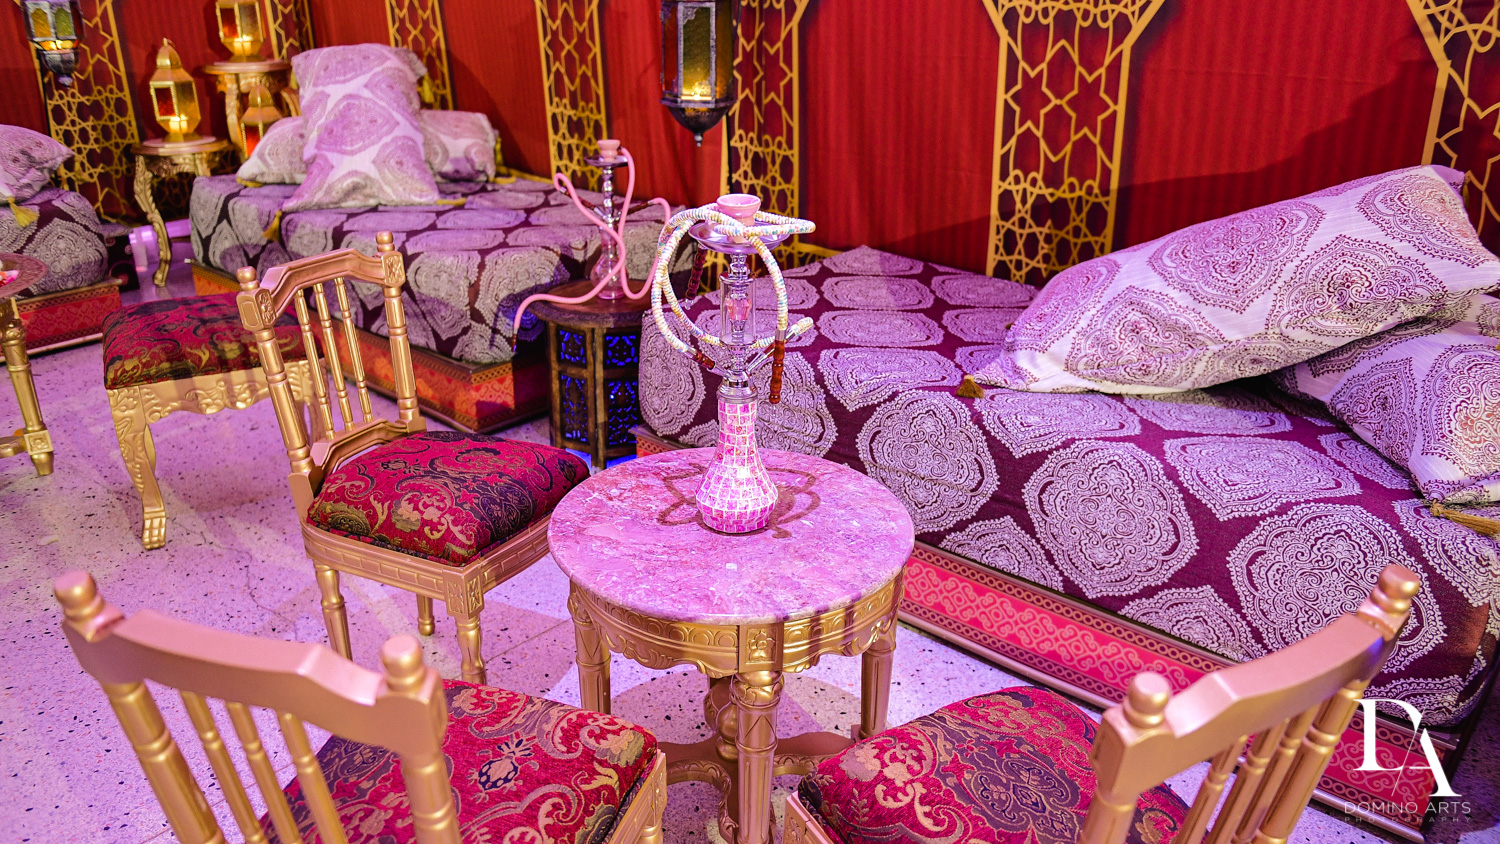 rental decor at Authentic Morrocan Jewish Henna Party by Domino Arts Photography